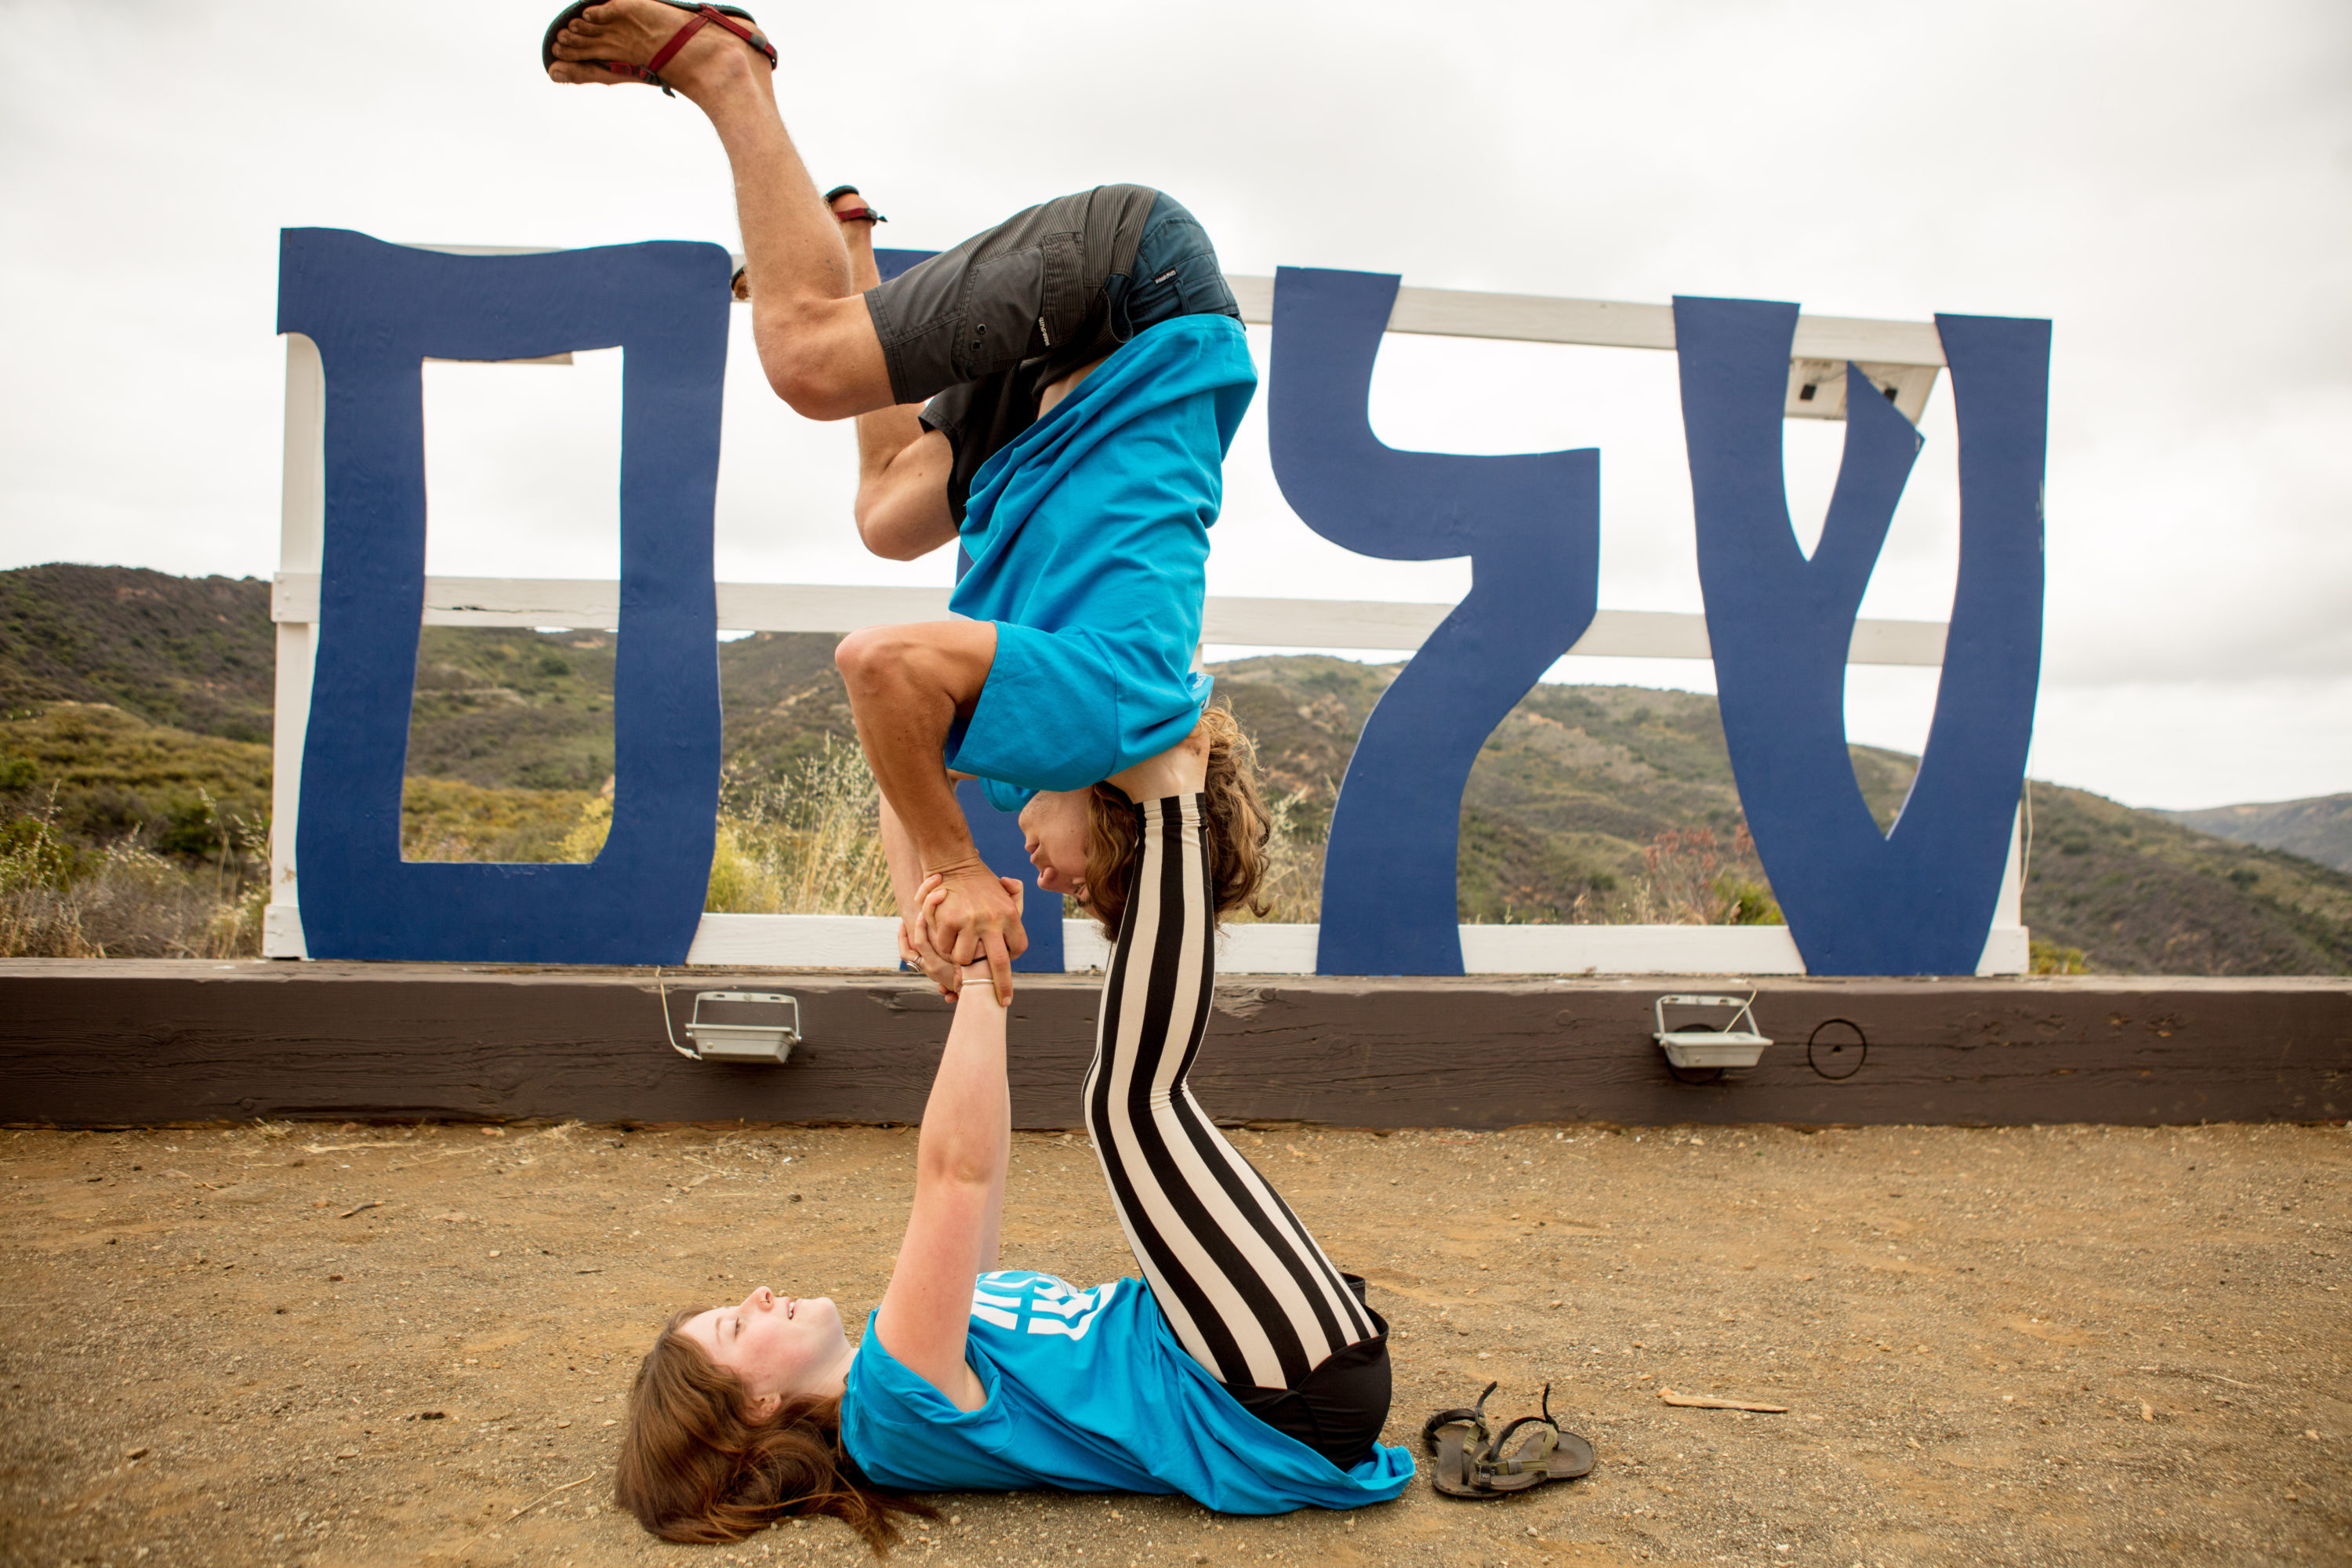 Two Friends Doing Yoga in Front of Shalom Sign